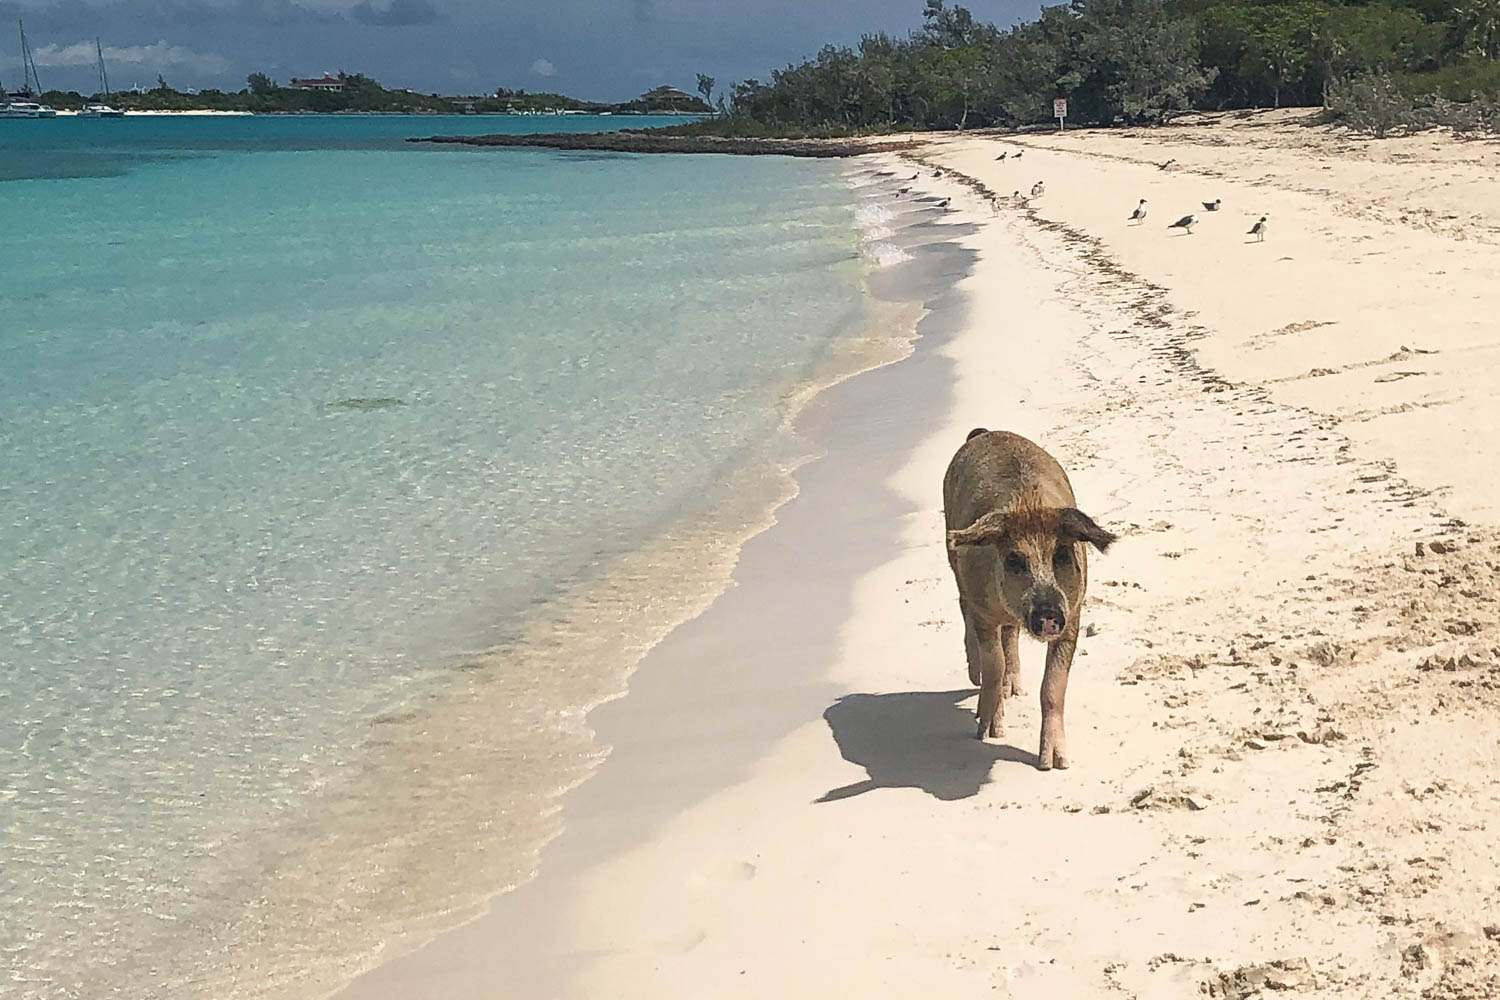 At Big Major Cay, there are up to 25 Exuma pigs. Pig Island Bahamas is one of the most traveled destinations in Exuma Cays.